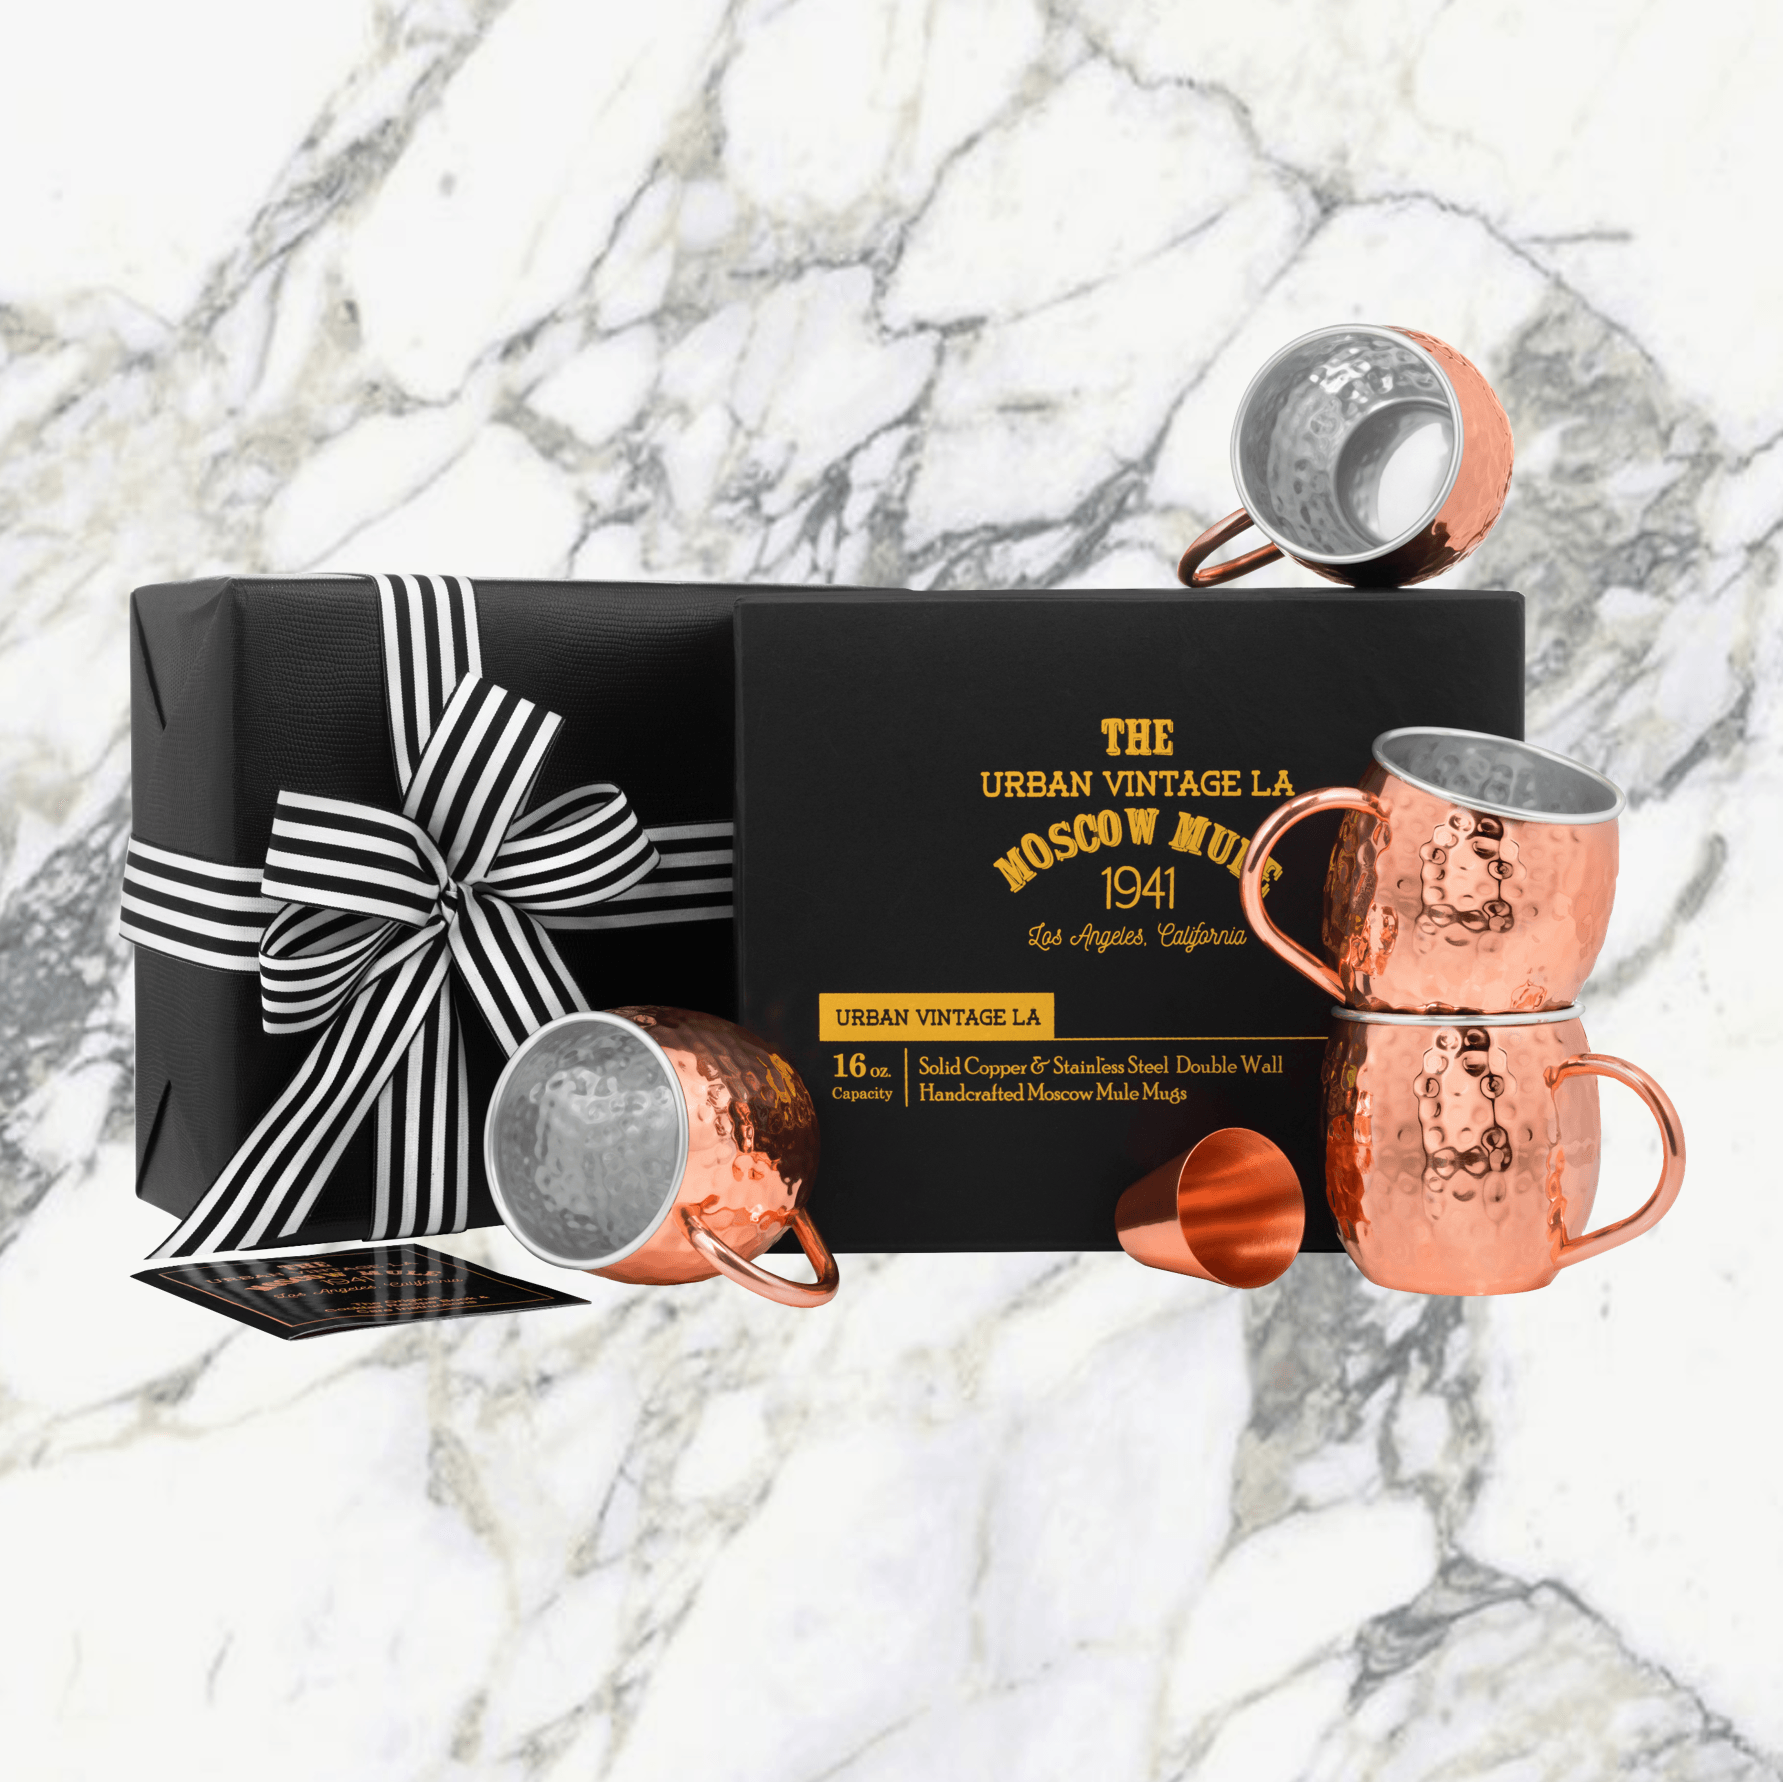 Urban Vintage LA Set of 4 Lined Copper And Stainless-Steel Mugs In Black Gift Box With Gift Wrapped Box in Background With Black and White Ribbon